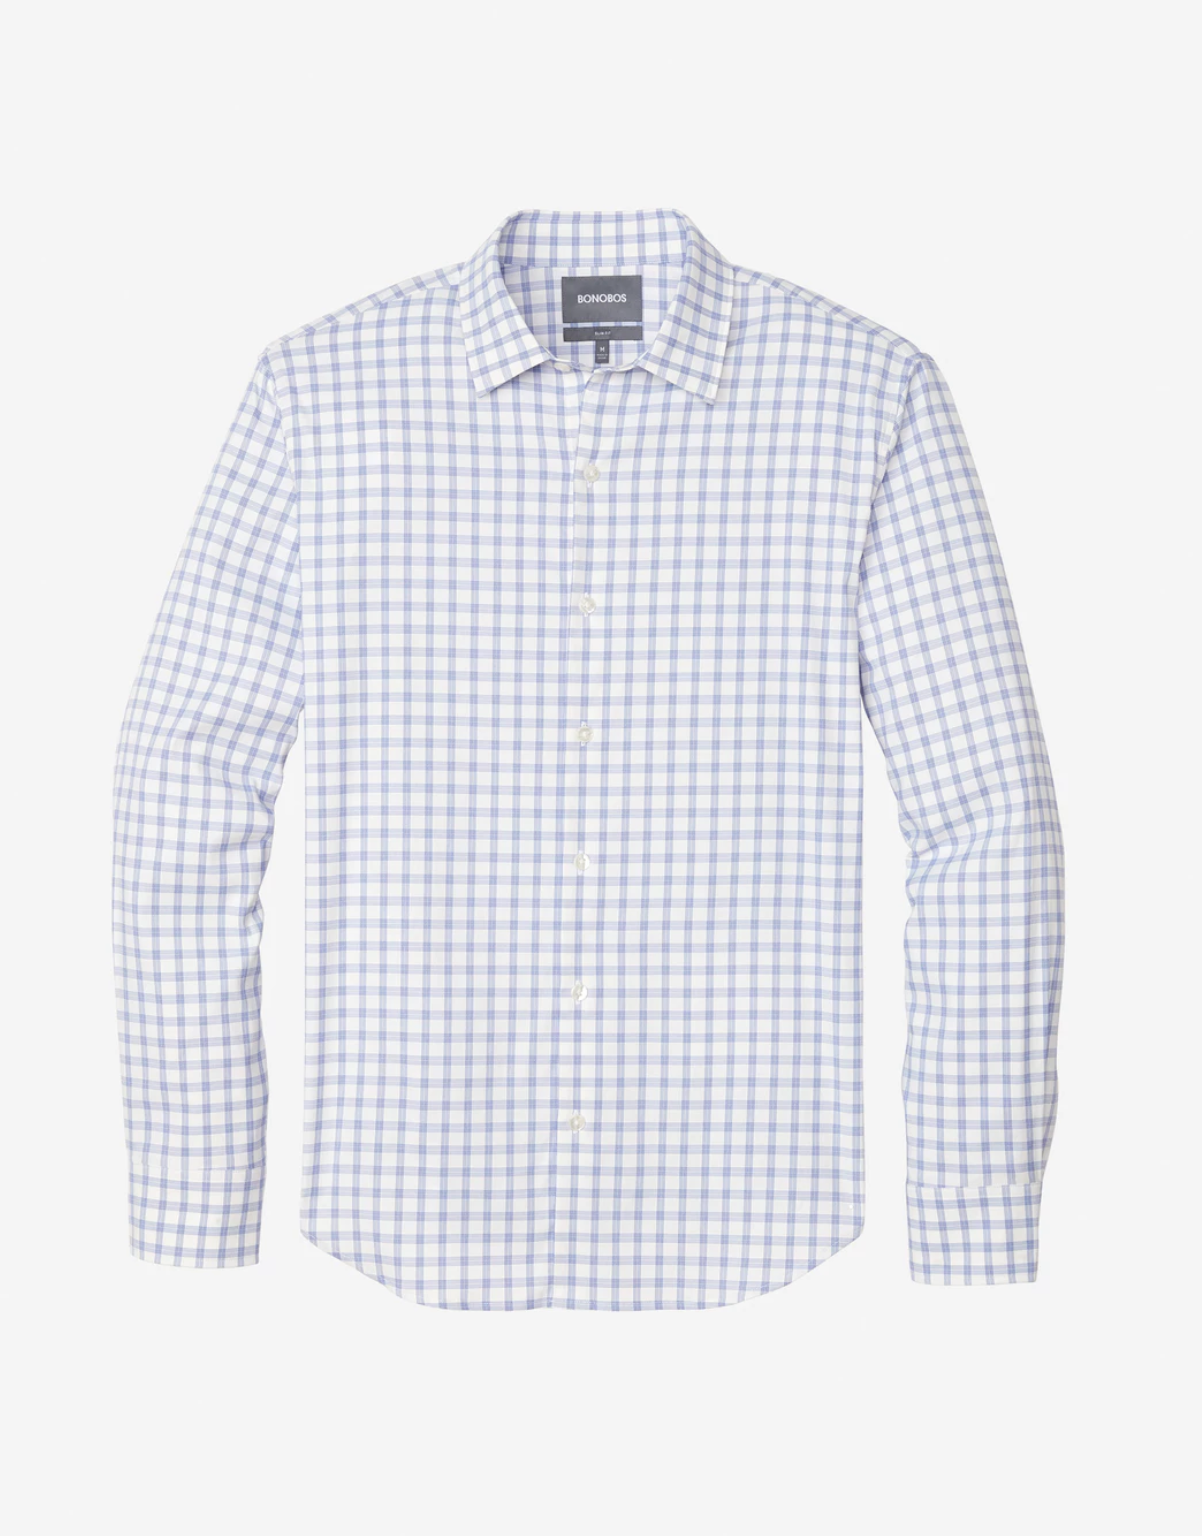 Bonobos Tech Check Button Down